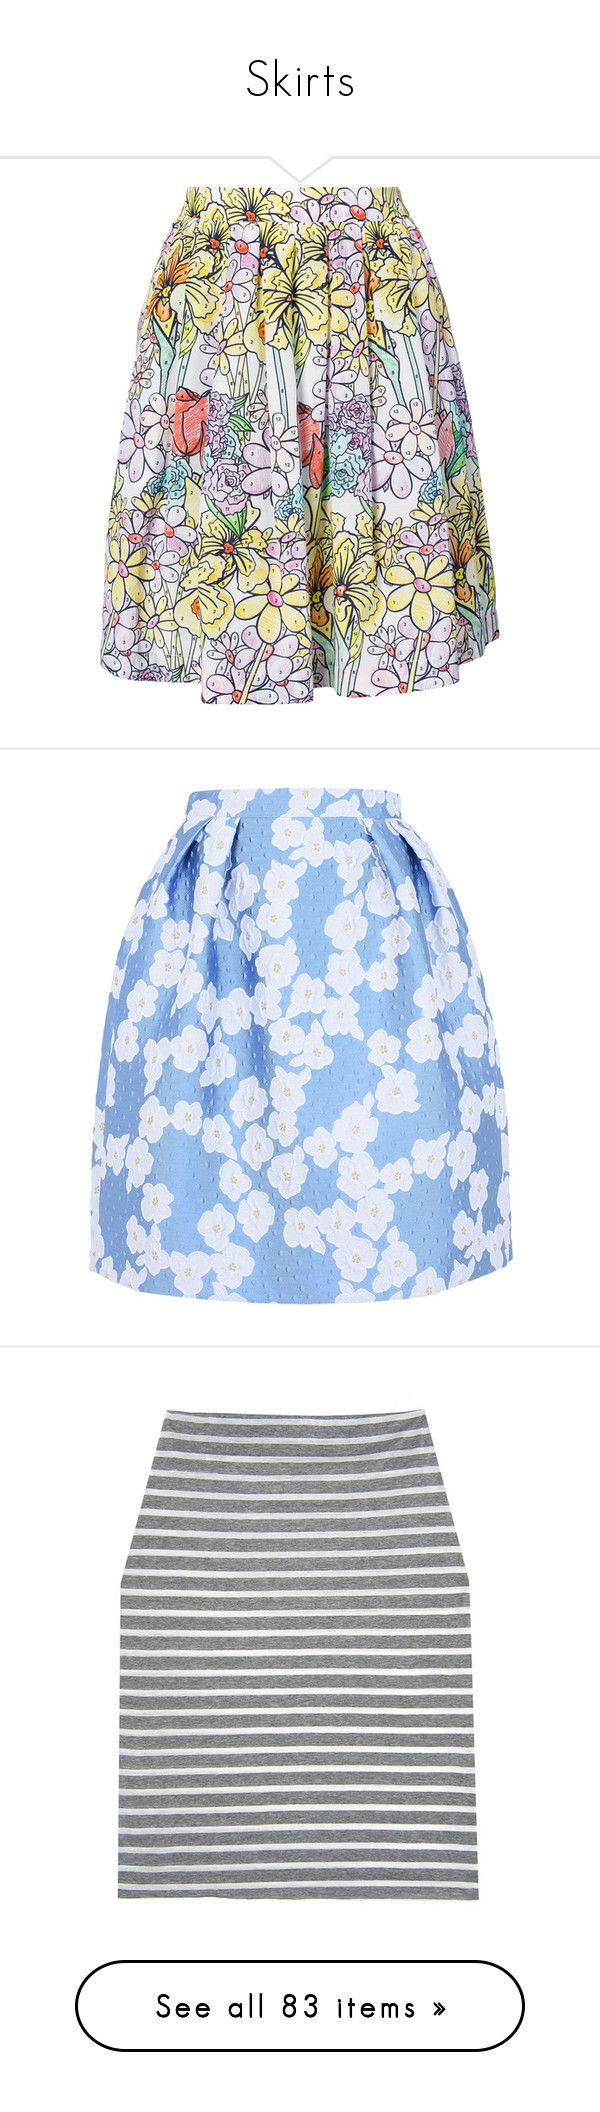 """""""Skirts"""" by haleyadams101762 ❤ liked on Polyvore featuring skirts, multicolor, ruched skirt, colorful skirts, high-waist skirt, moschino skirt, floral pattern skirt, blue, sky blue and multi color skirt"""